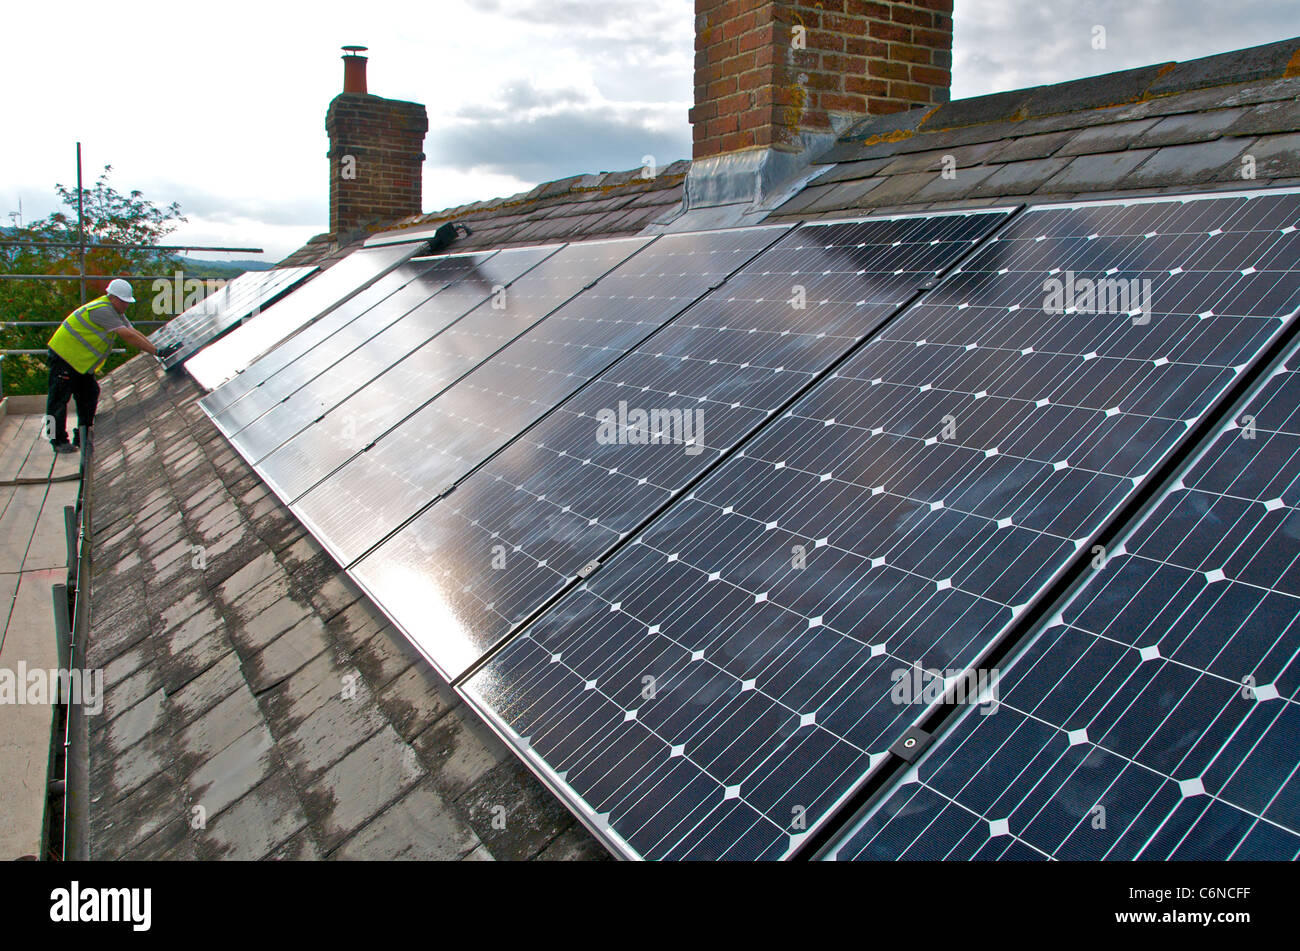 Photovoltaic panels on a roof using solar energy to create electricity - Stock Image